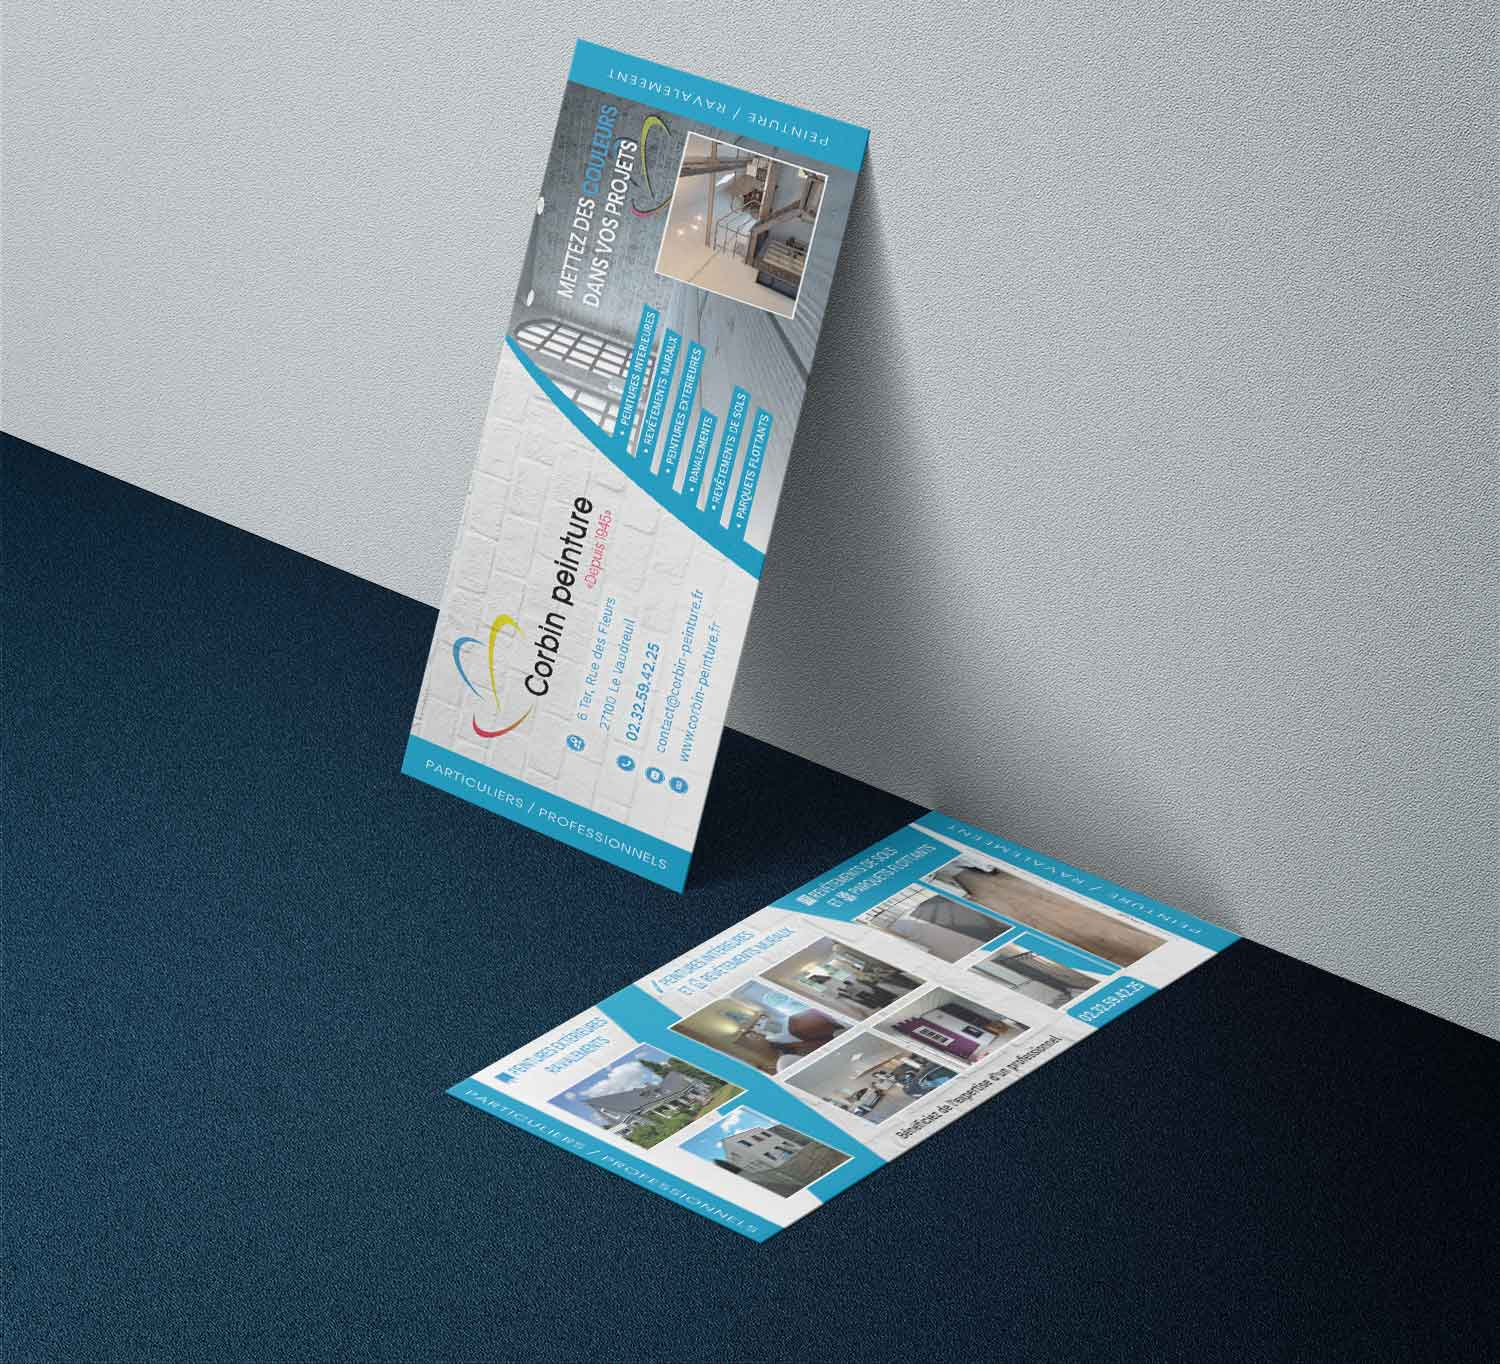 Le Print Cest Lensemble Des Supports Imprimes Utilises En Marketing Tels Que Les Brochures Depliants Flyers Affiches Ou Encore Cartes De Visite